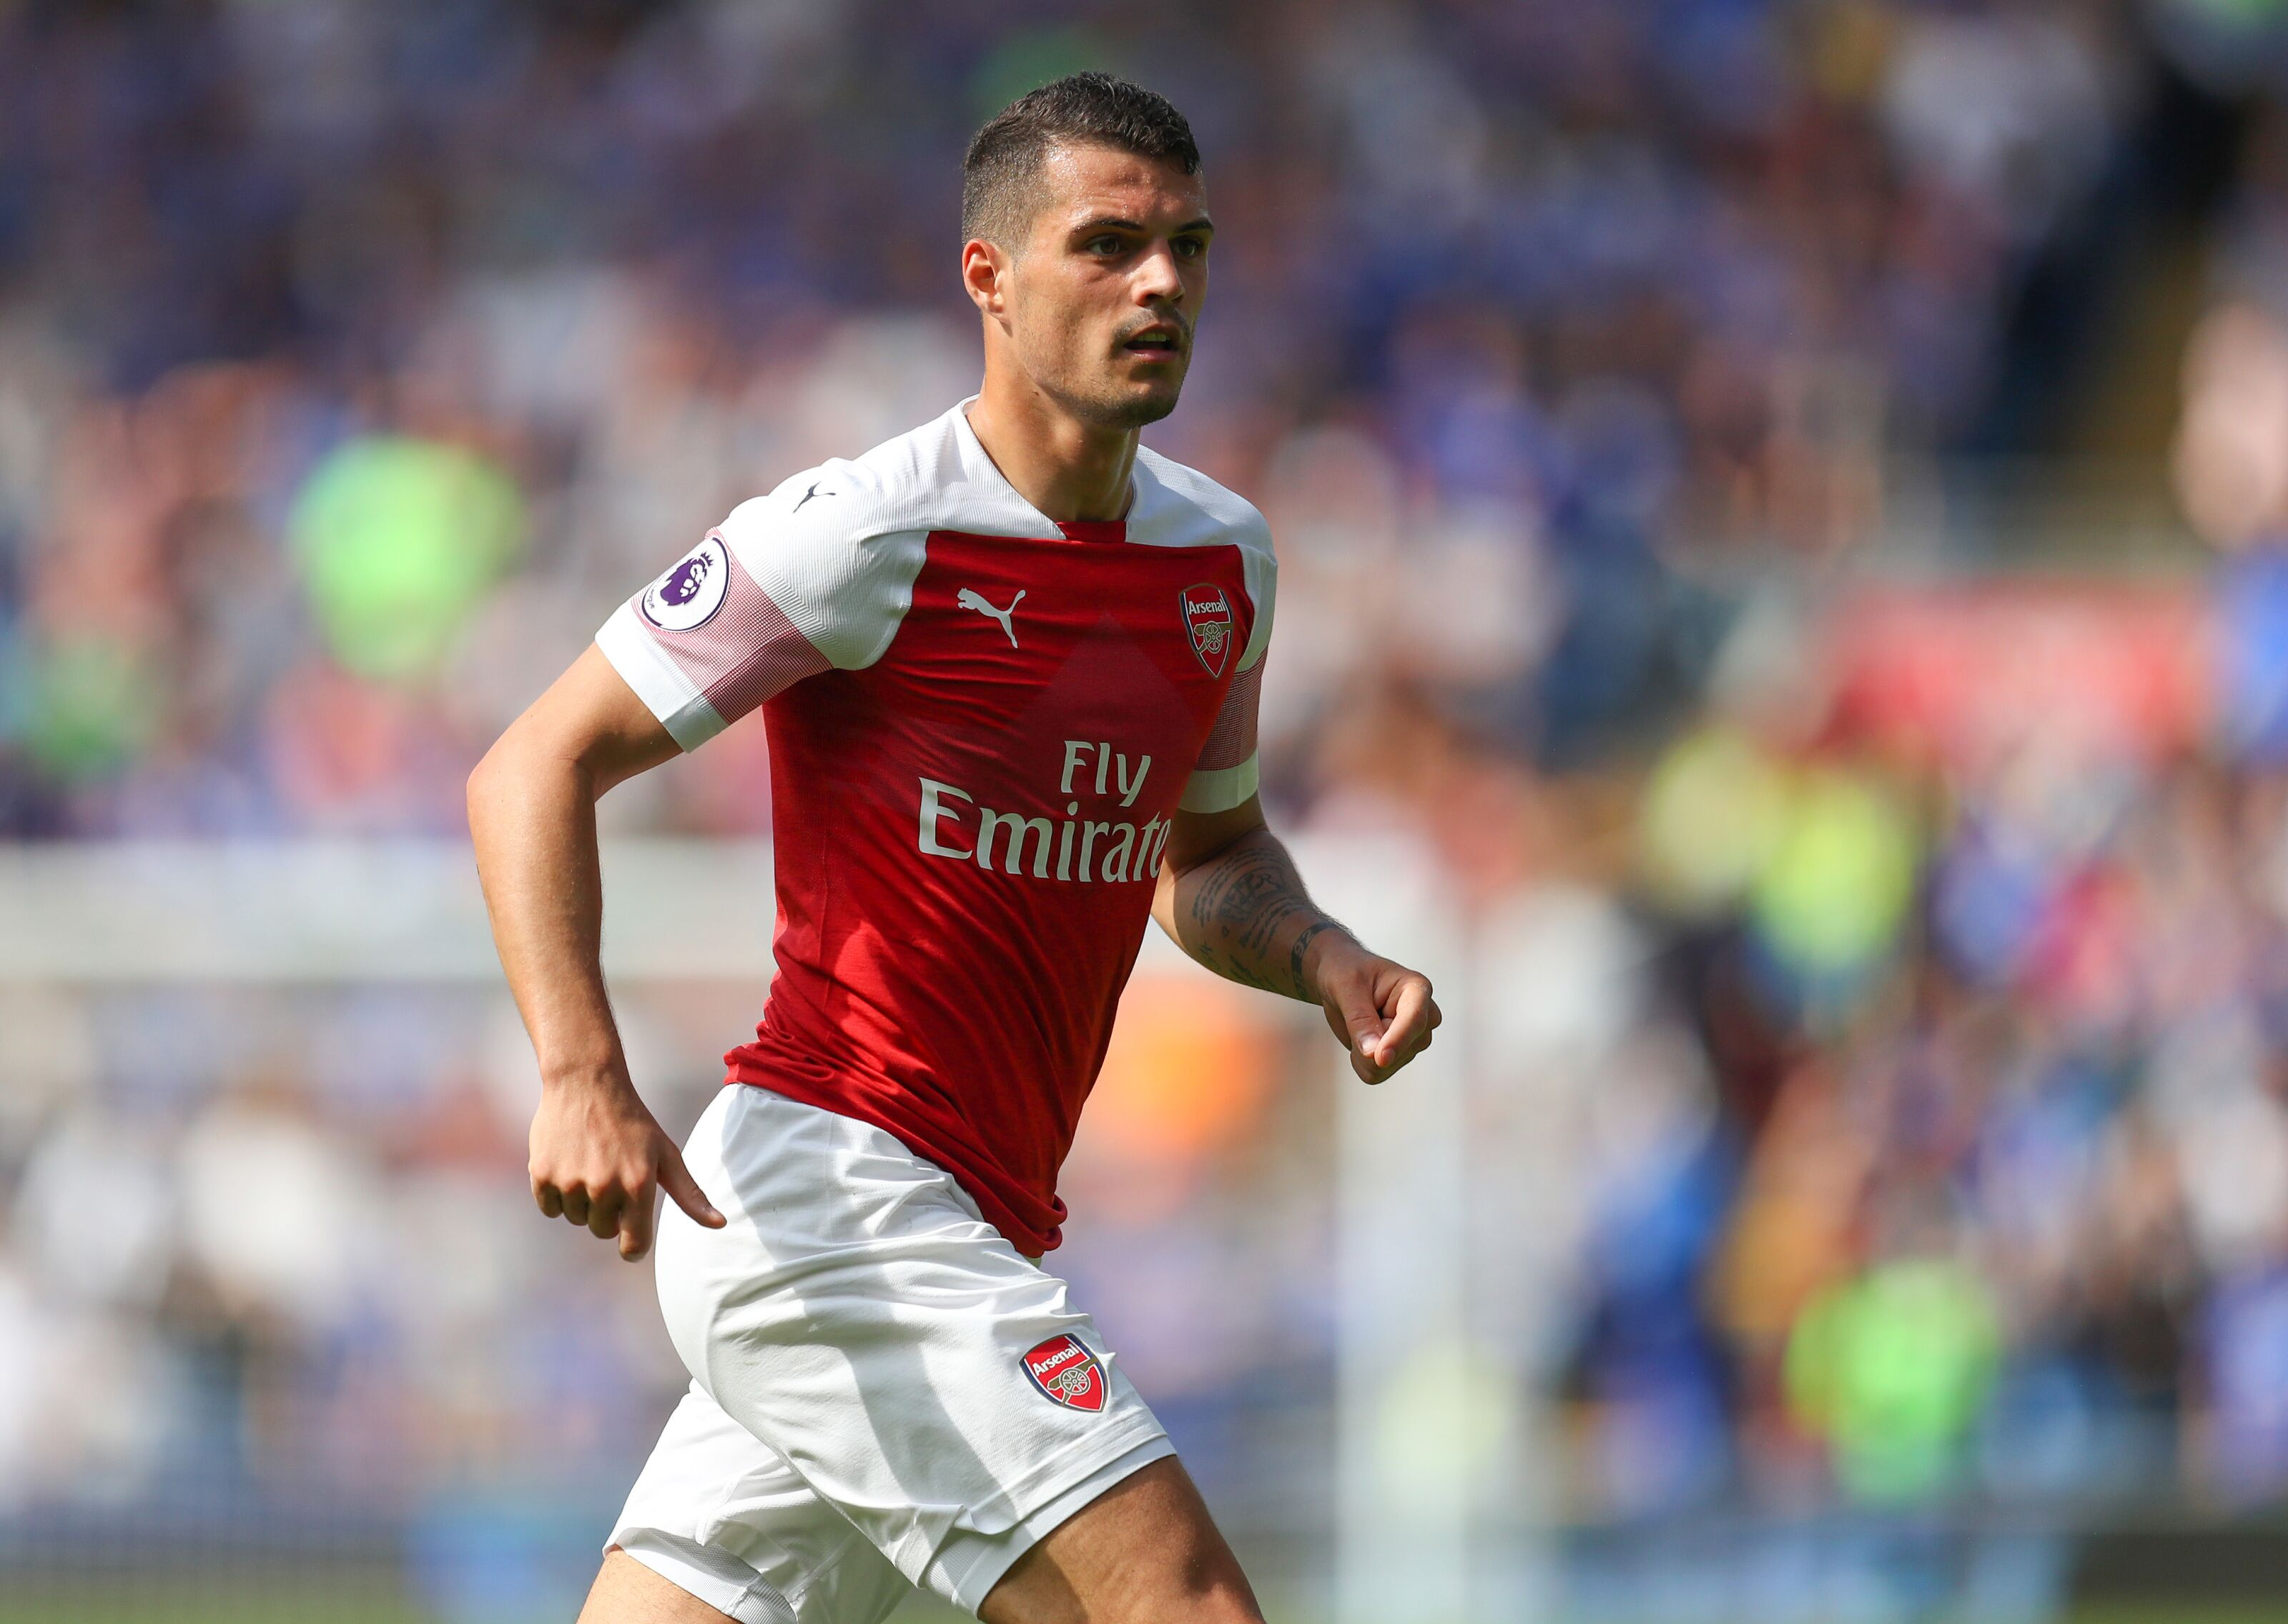 Arsenal: Captaincy question asked again vs Leicester City